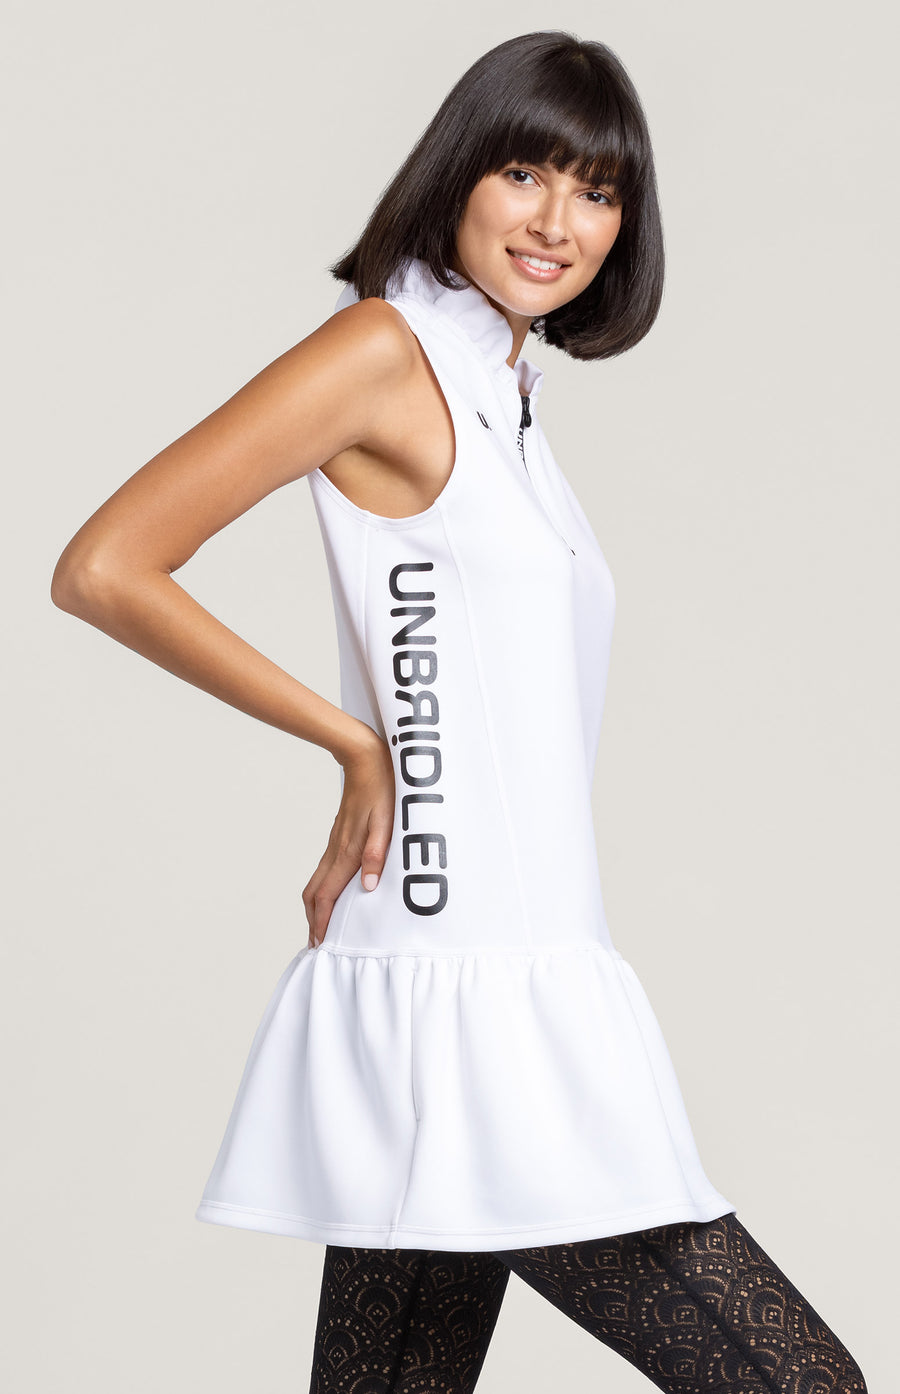 Althea G Logo Dress